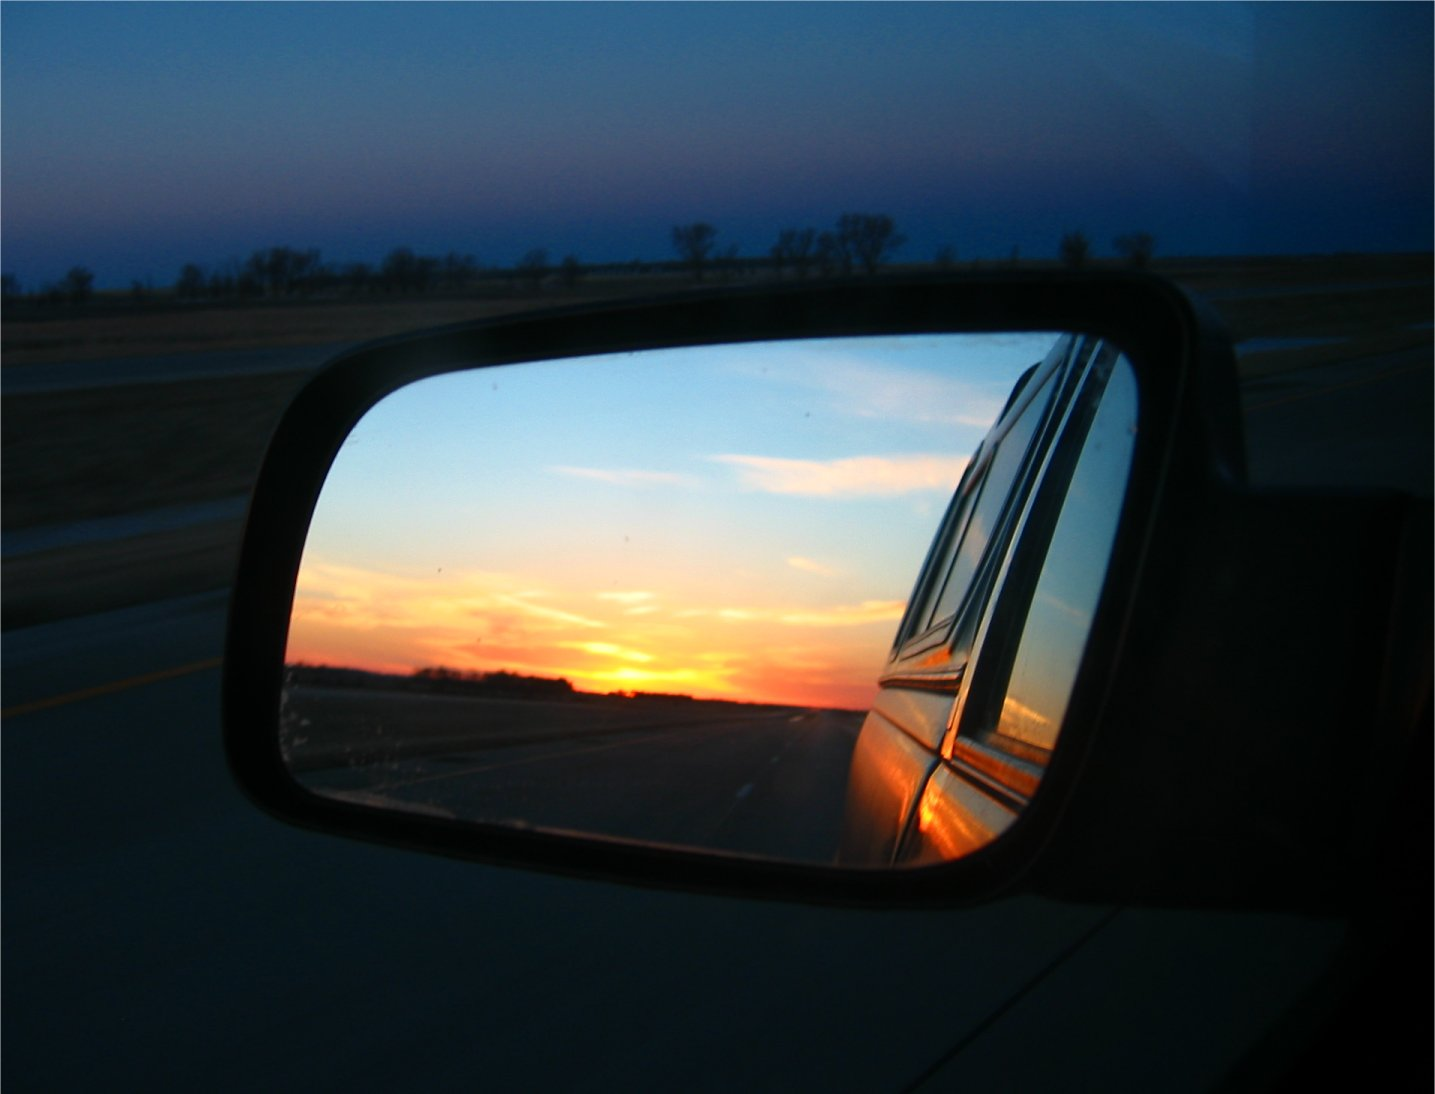 Sun rising in the rearview mirror - I94 - North Dakota - March 2005 - soul-amp.com